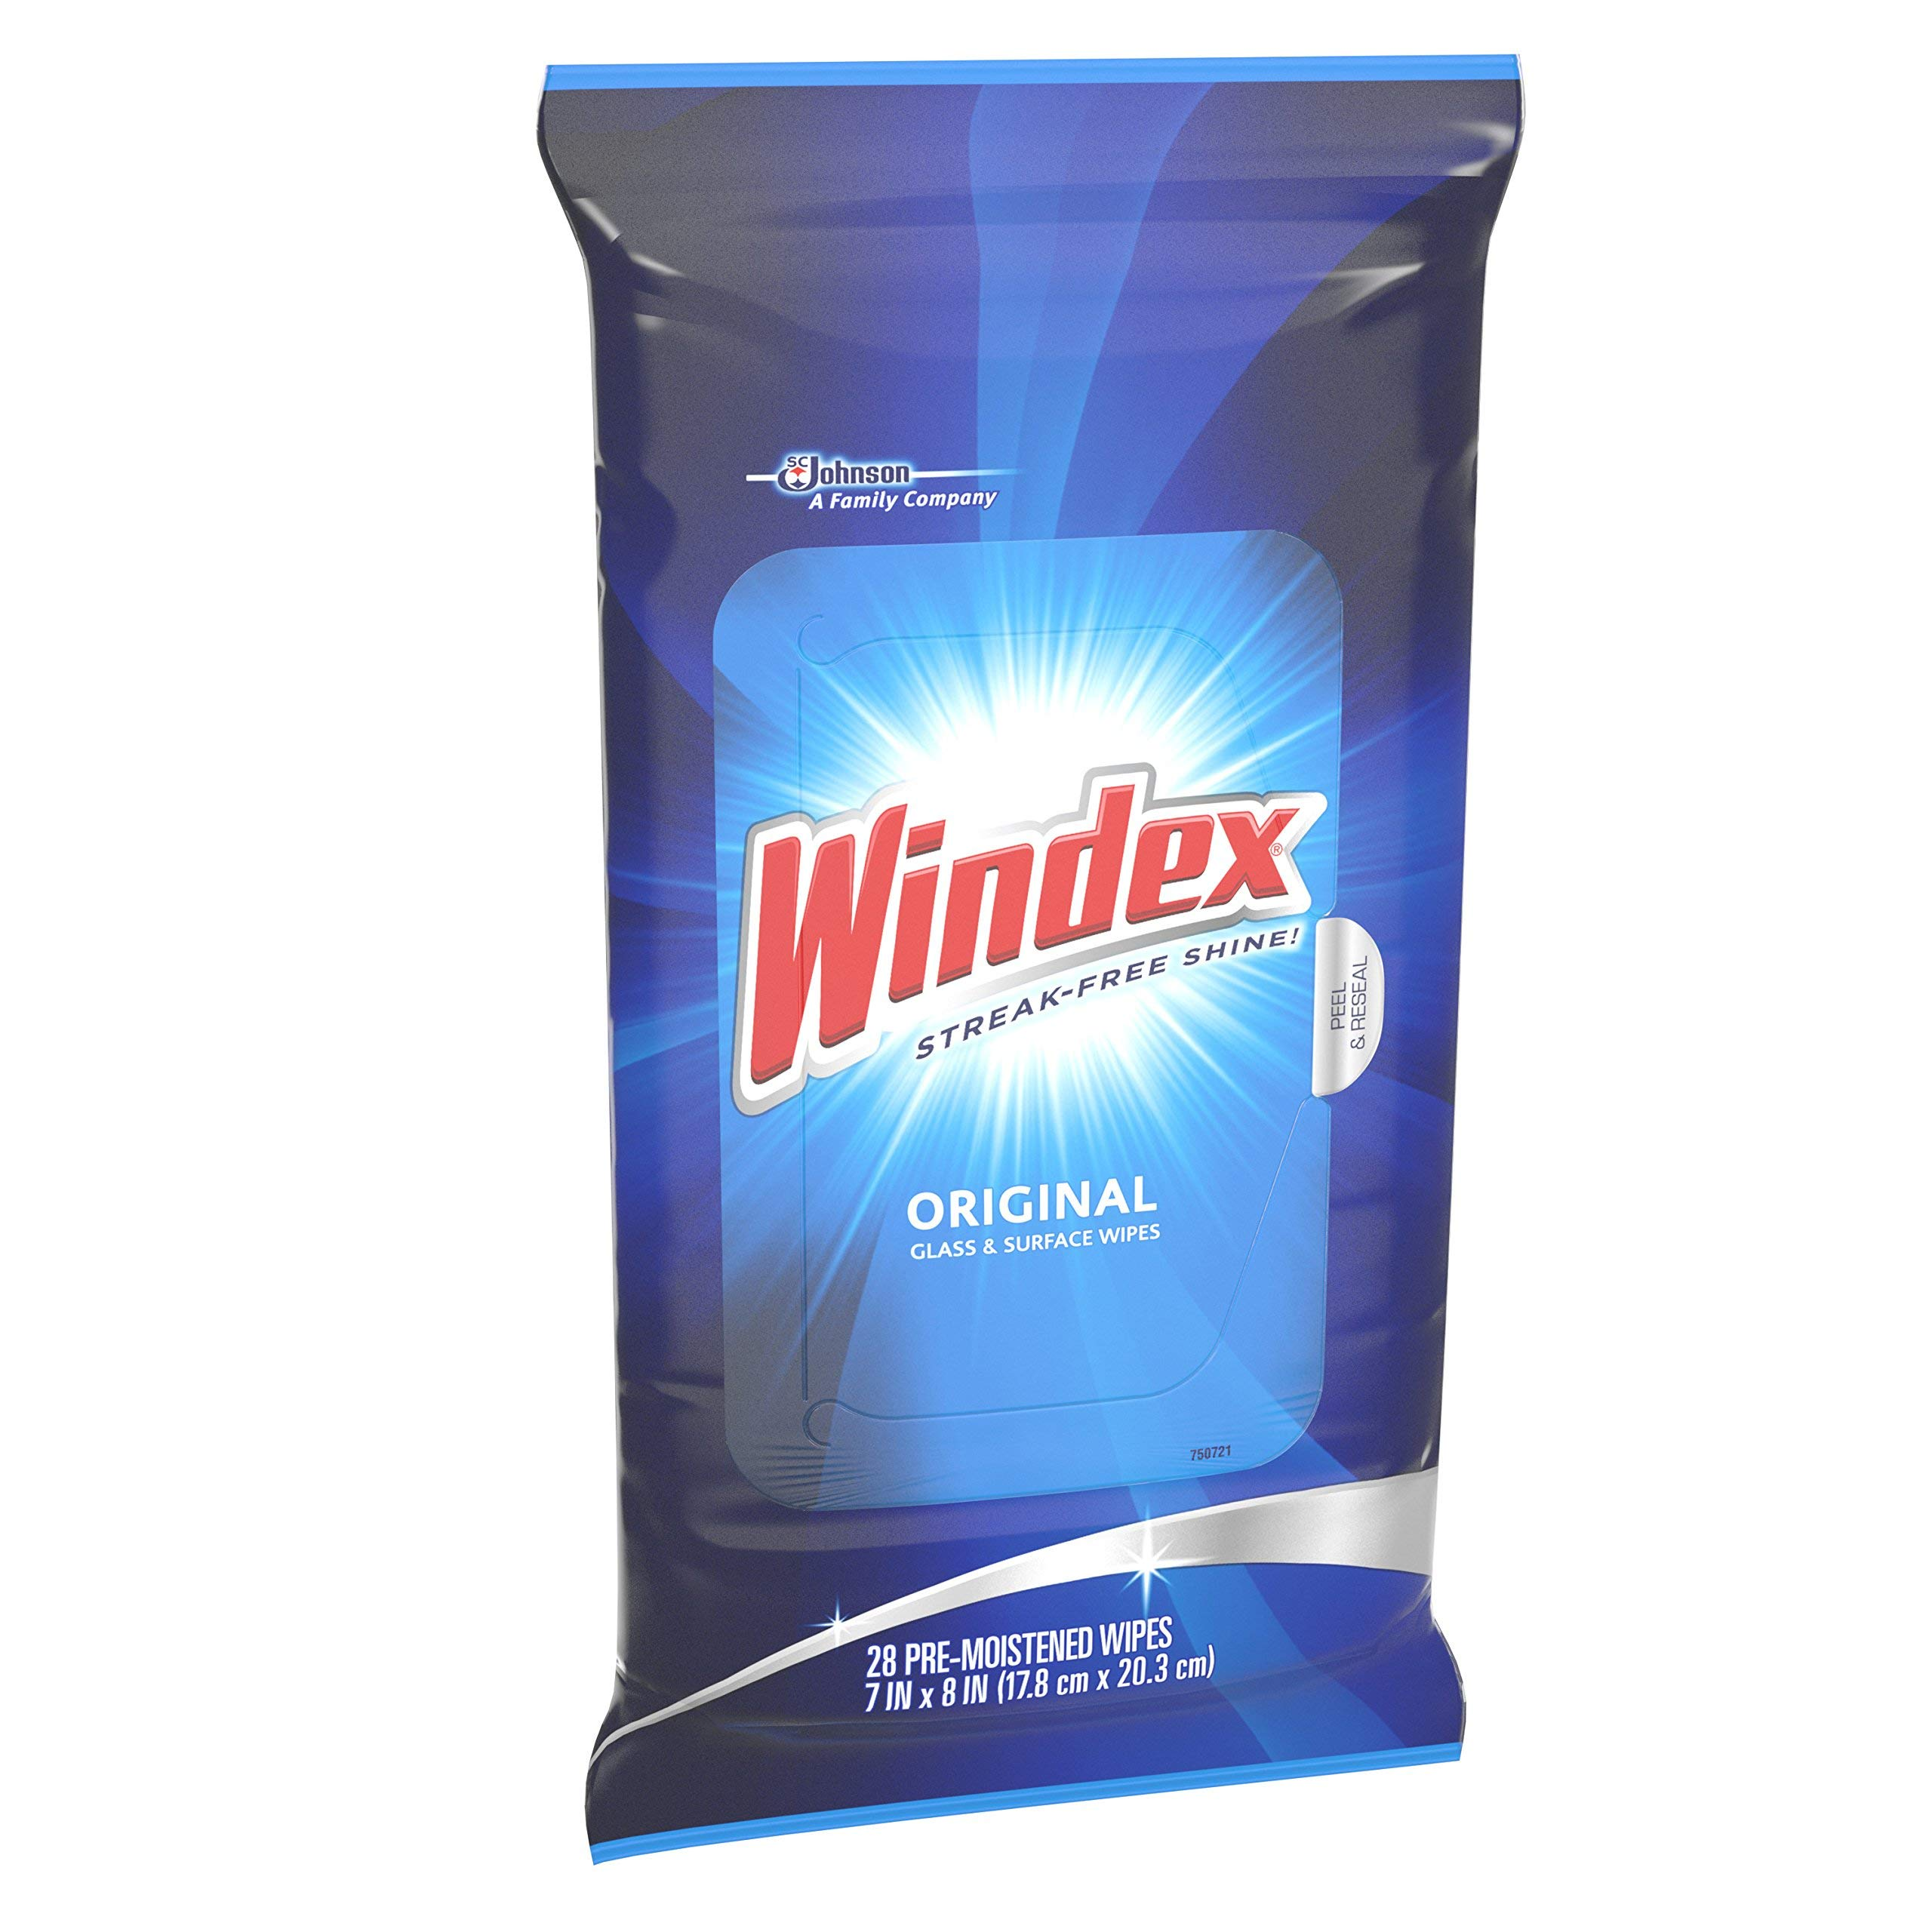 BGXZ Original Glass Wipes, 28 ct, 4 Pack of 6 by Windex (Image #3)